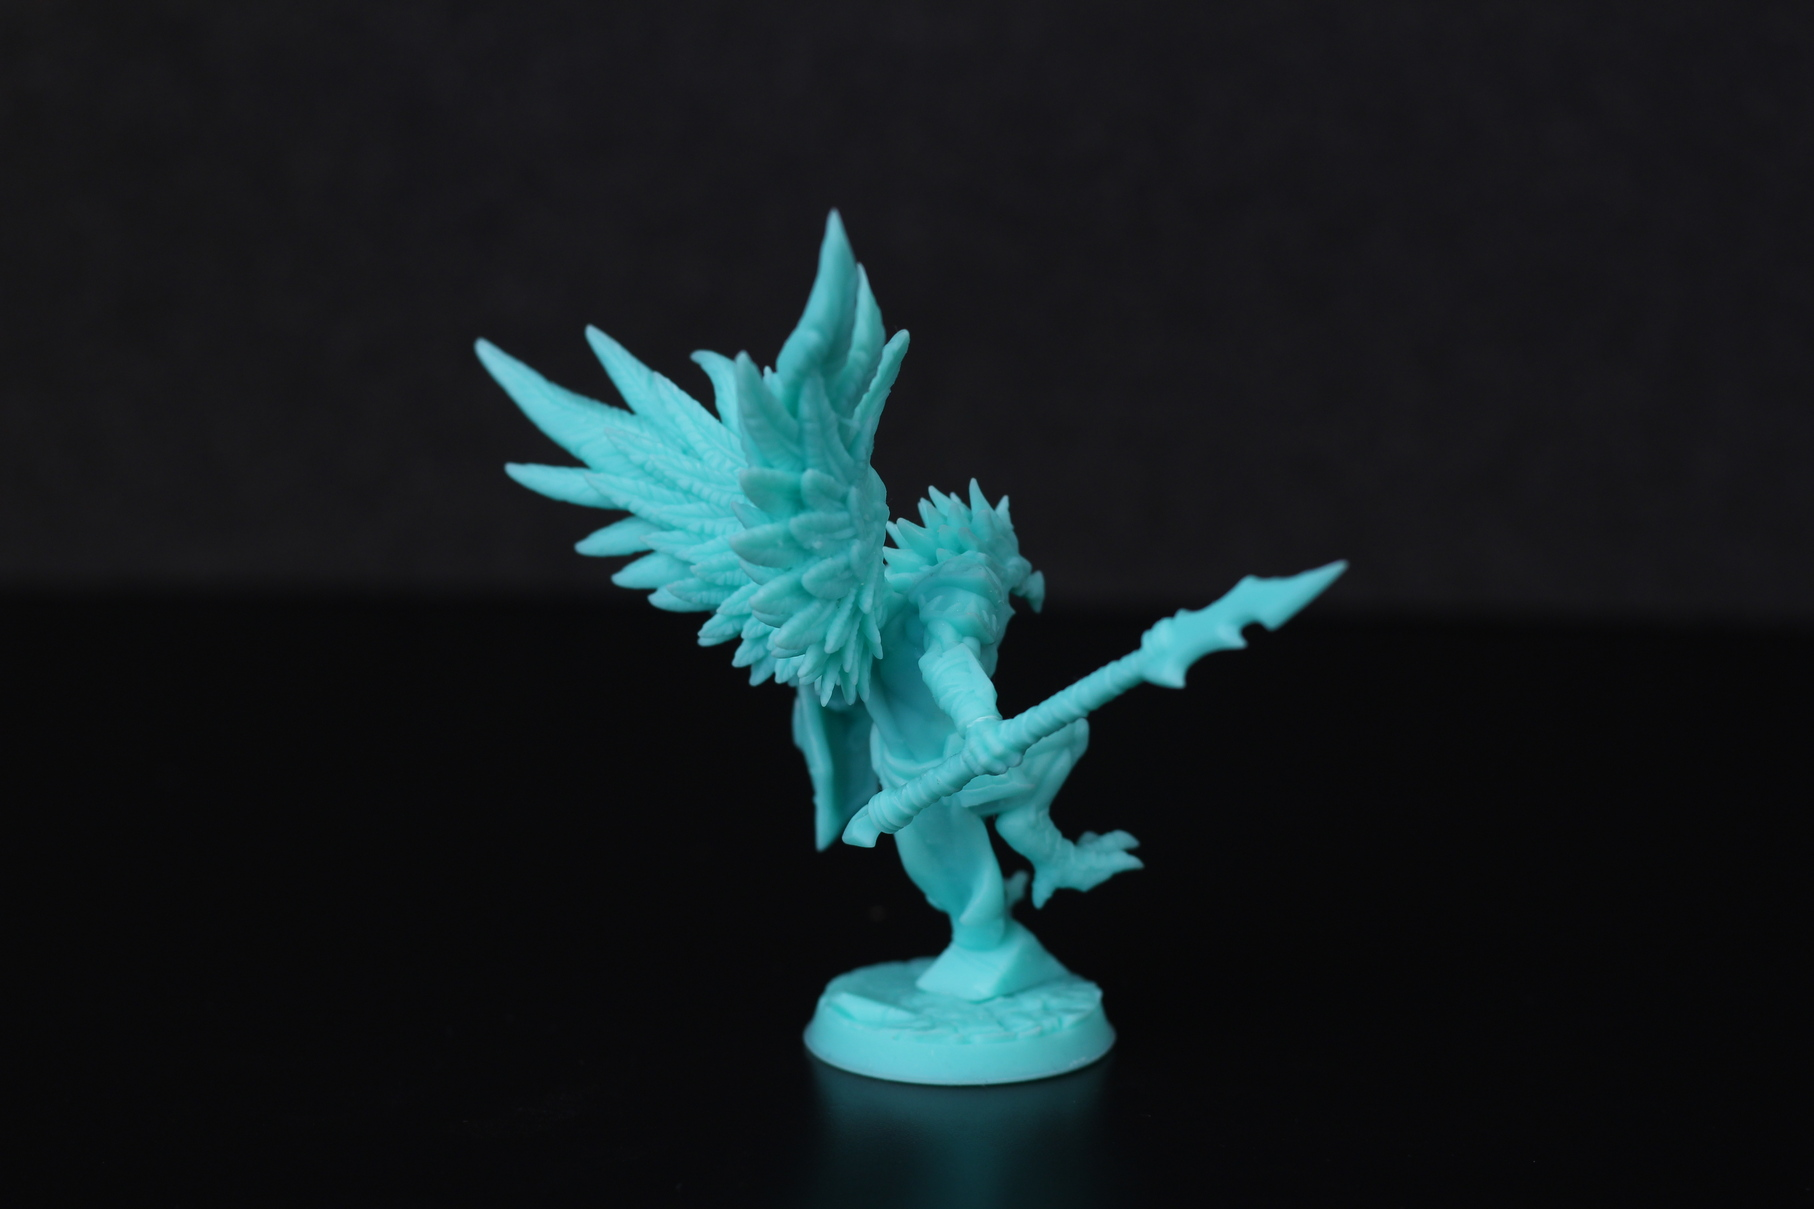 High Gryphkin printed on Anycubic Photon Mono X 3 | Anycubic Photon Mono X Review - Large Format Resin 3D Printer